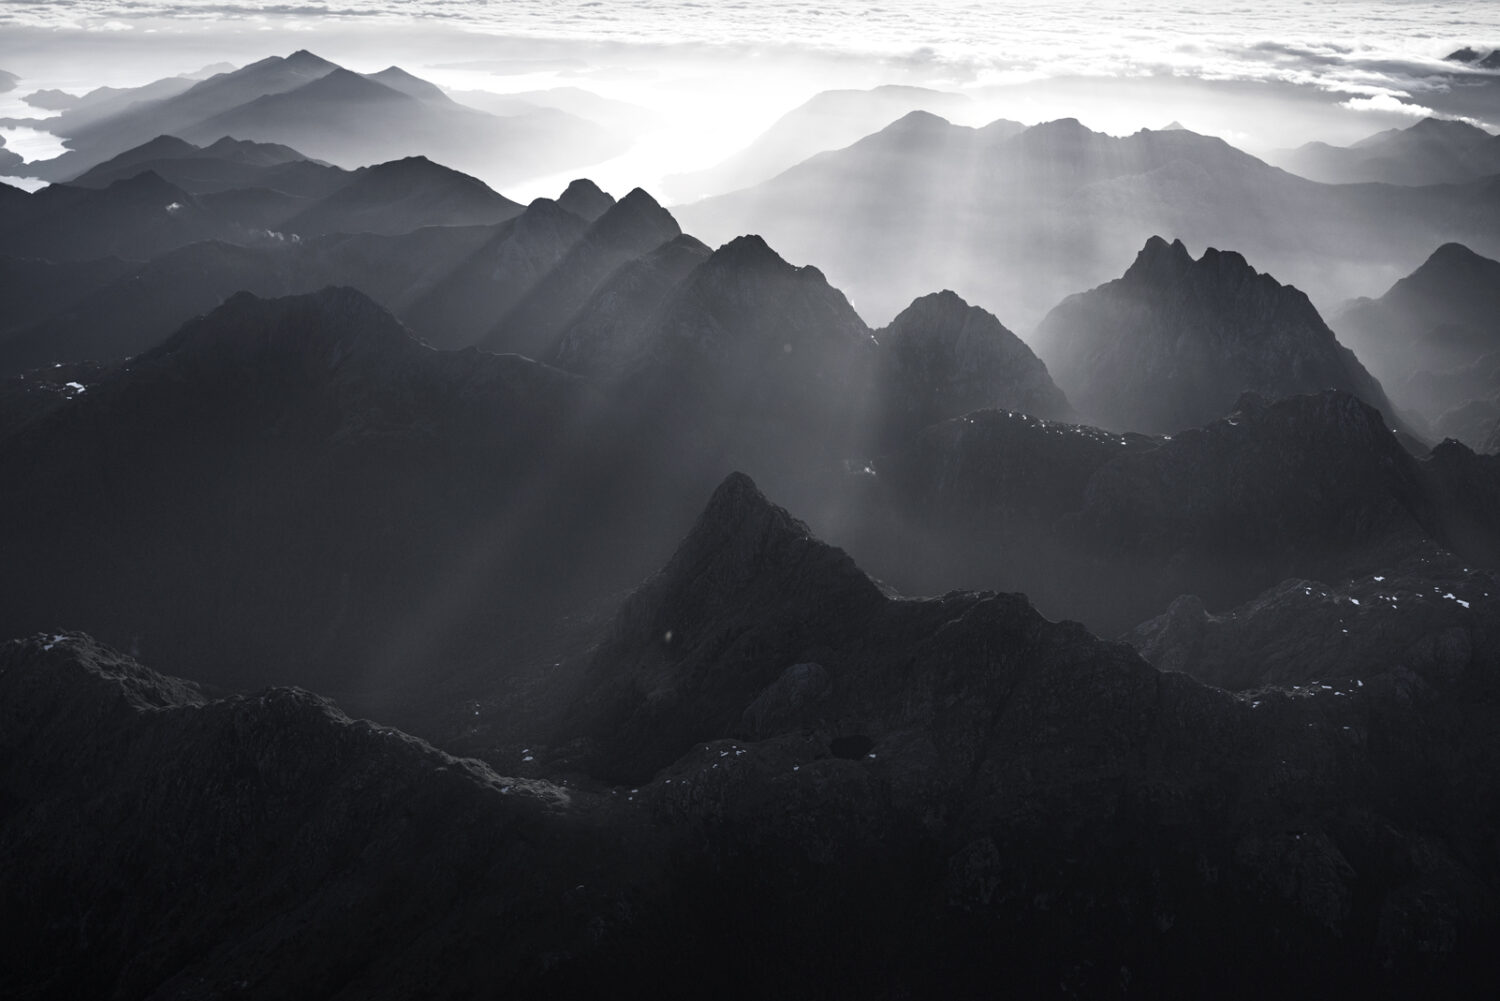 Mountains and light